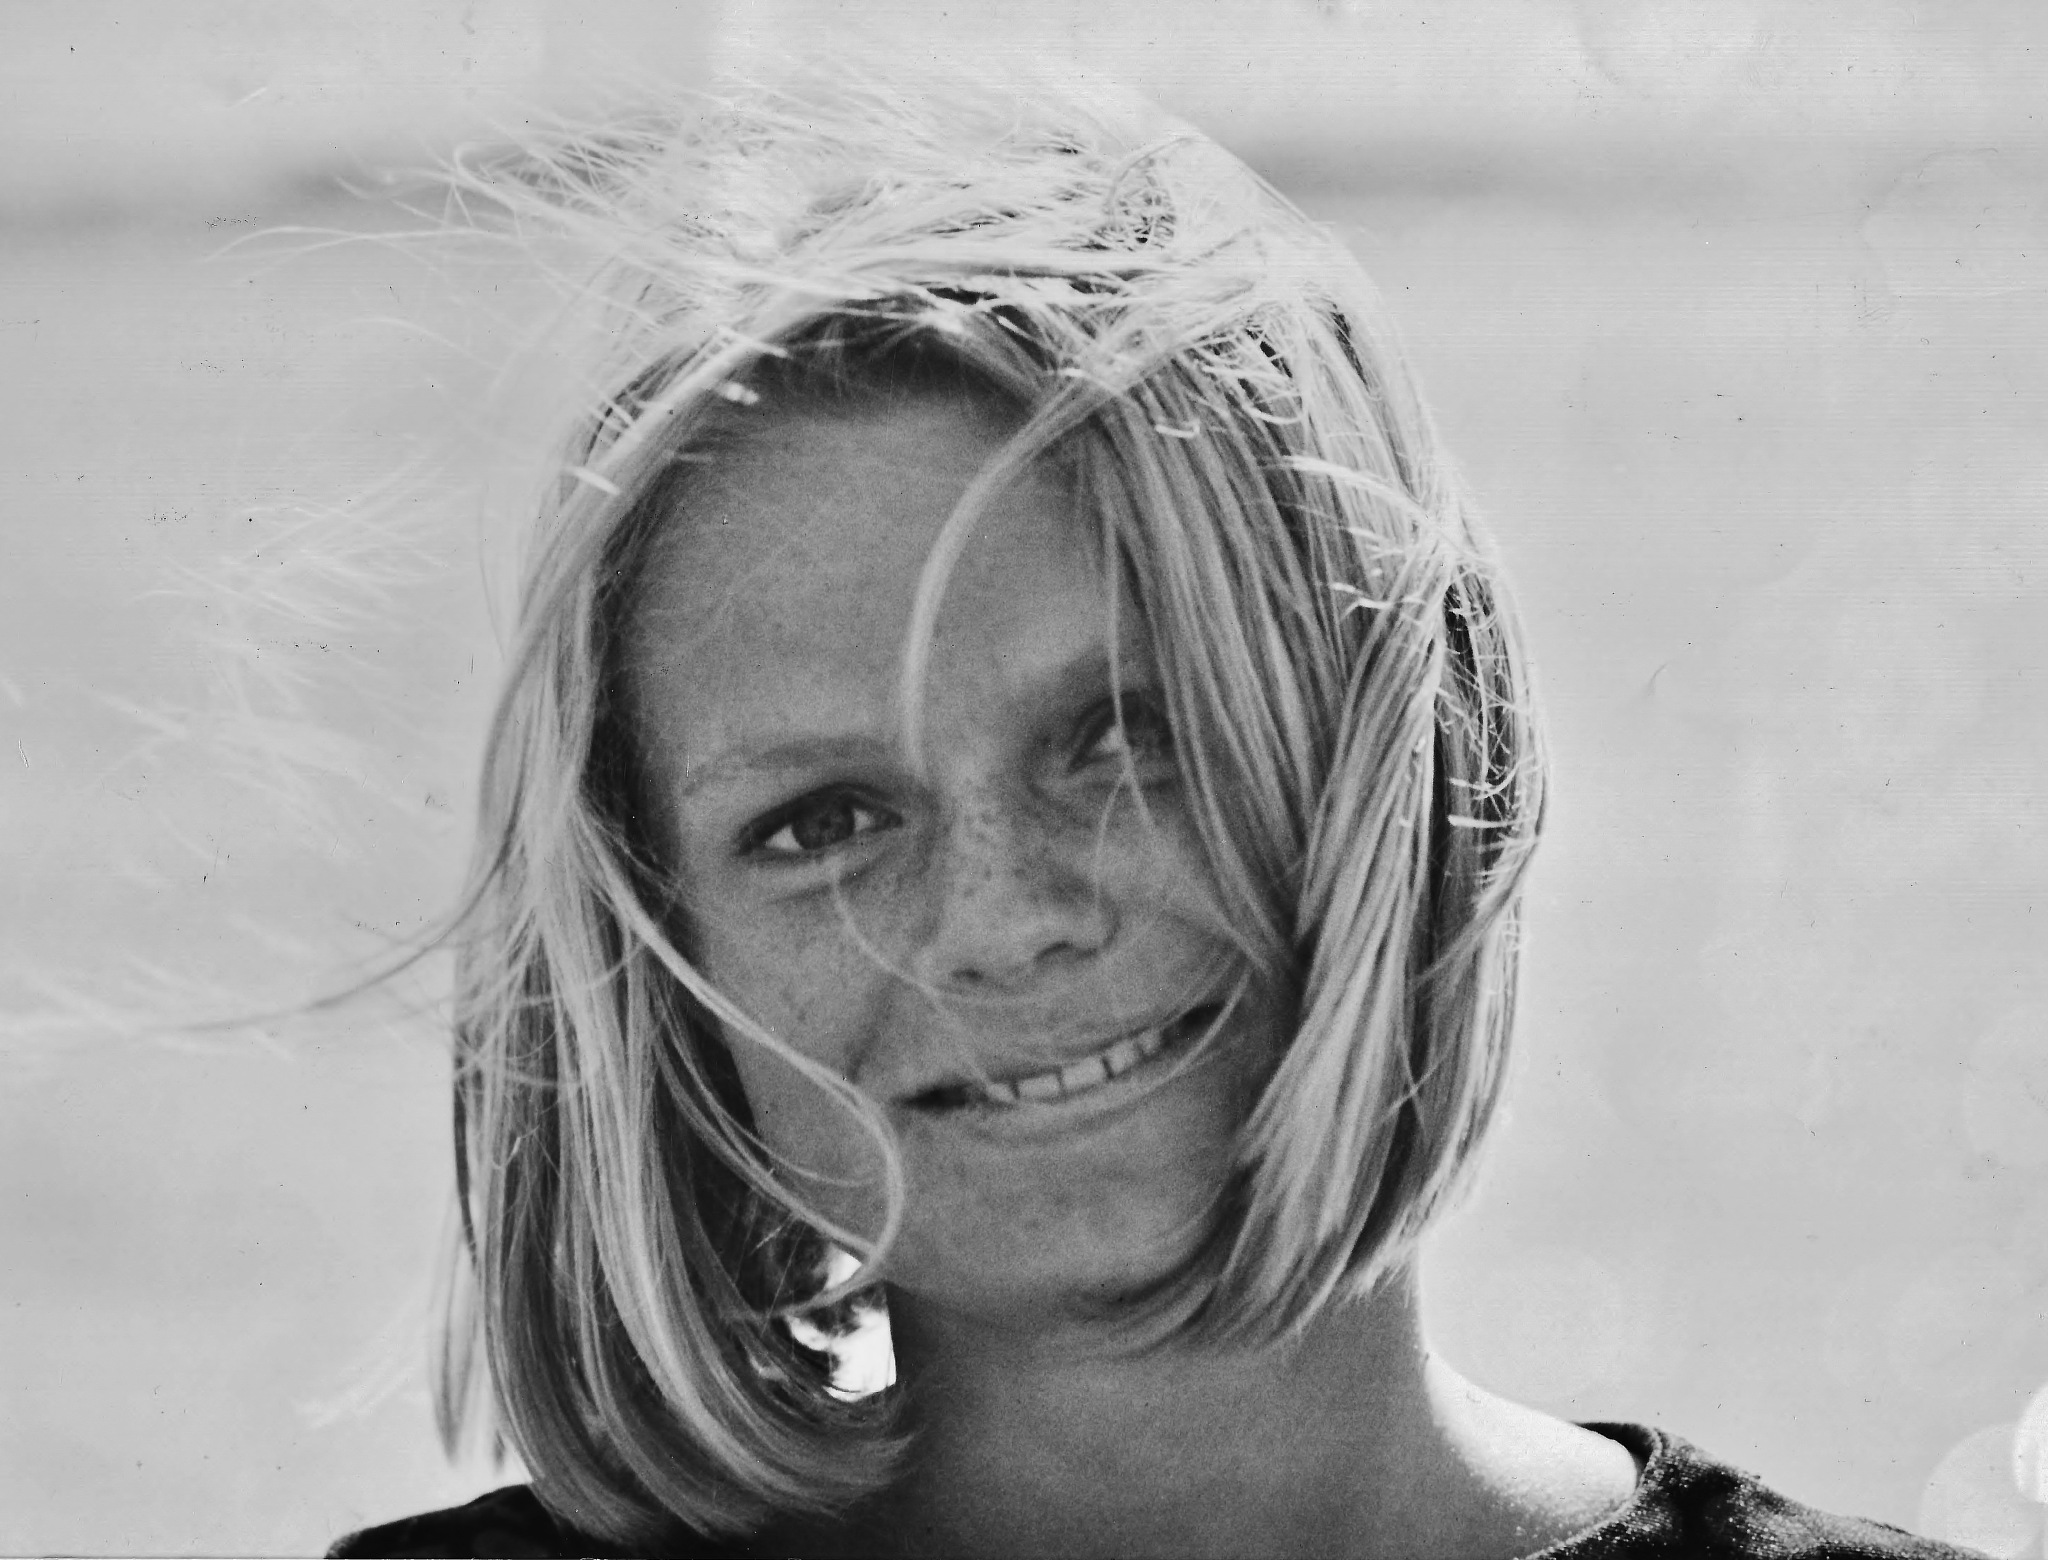 Sweet summer girl with freckles (1964) by rolf persson